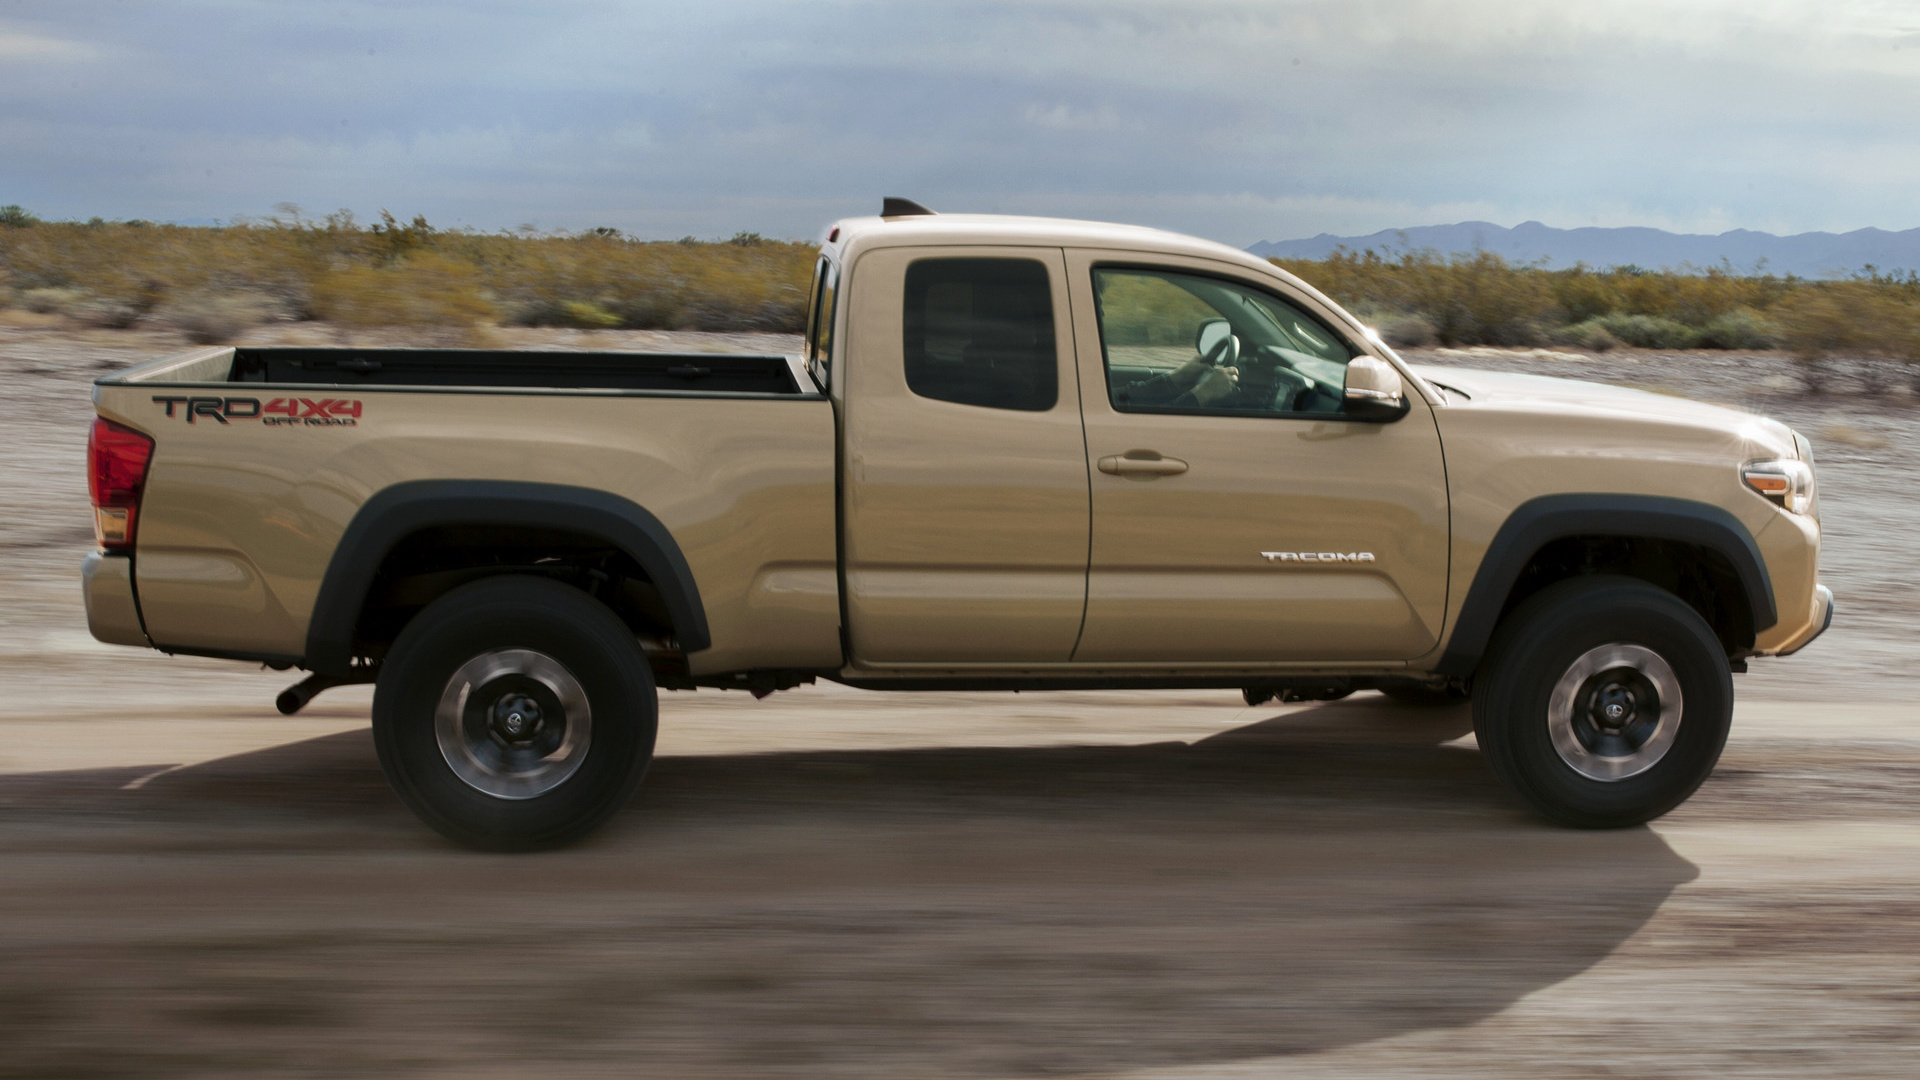 Toyota Tacoma TRD Off-Road Access Cab (2016) Wallpapers and HD Images ...